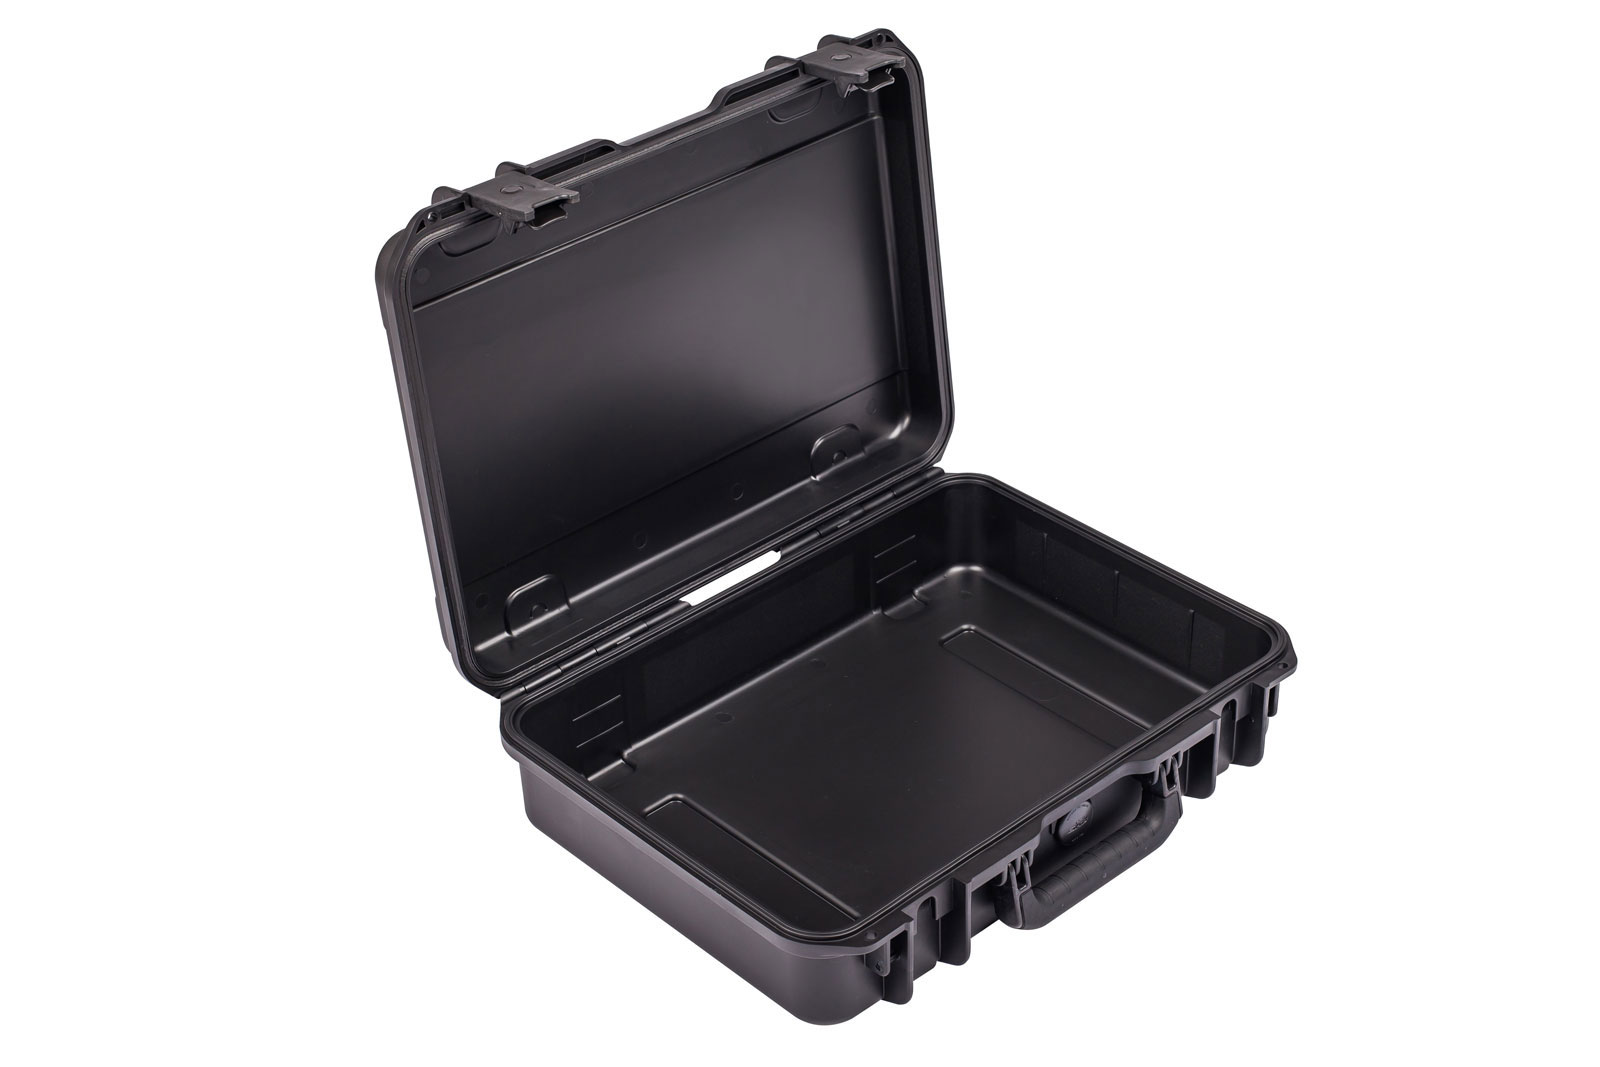 3I-1813-5B-E - UNIVERSAL WATERPROOF CASE 470 X 330 X 127 (89+38) MM EMPTY